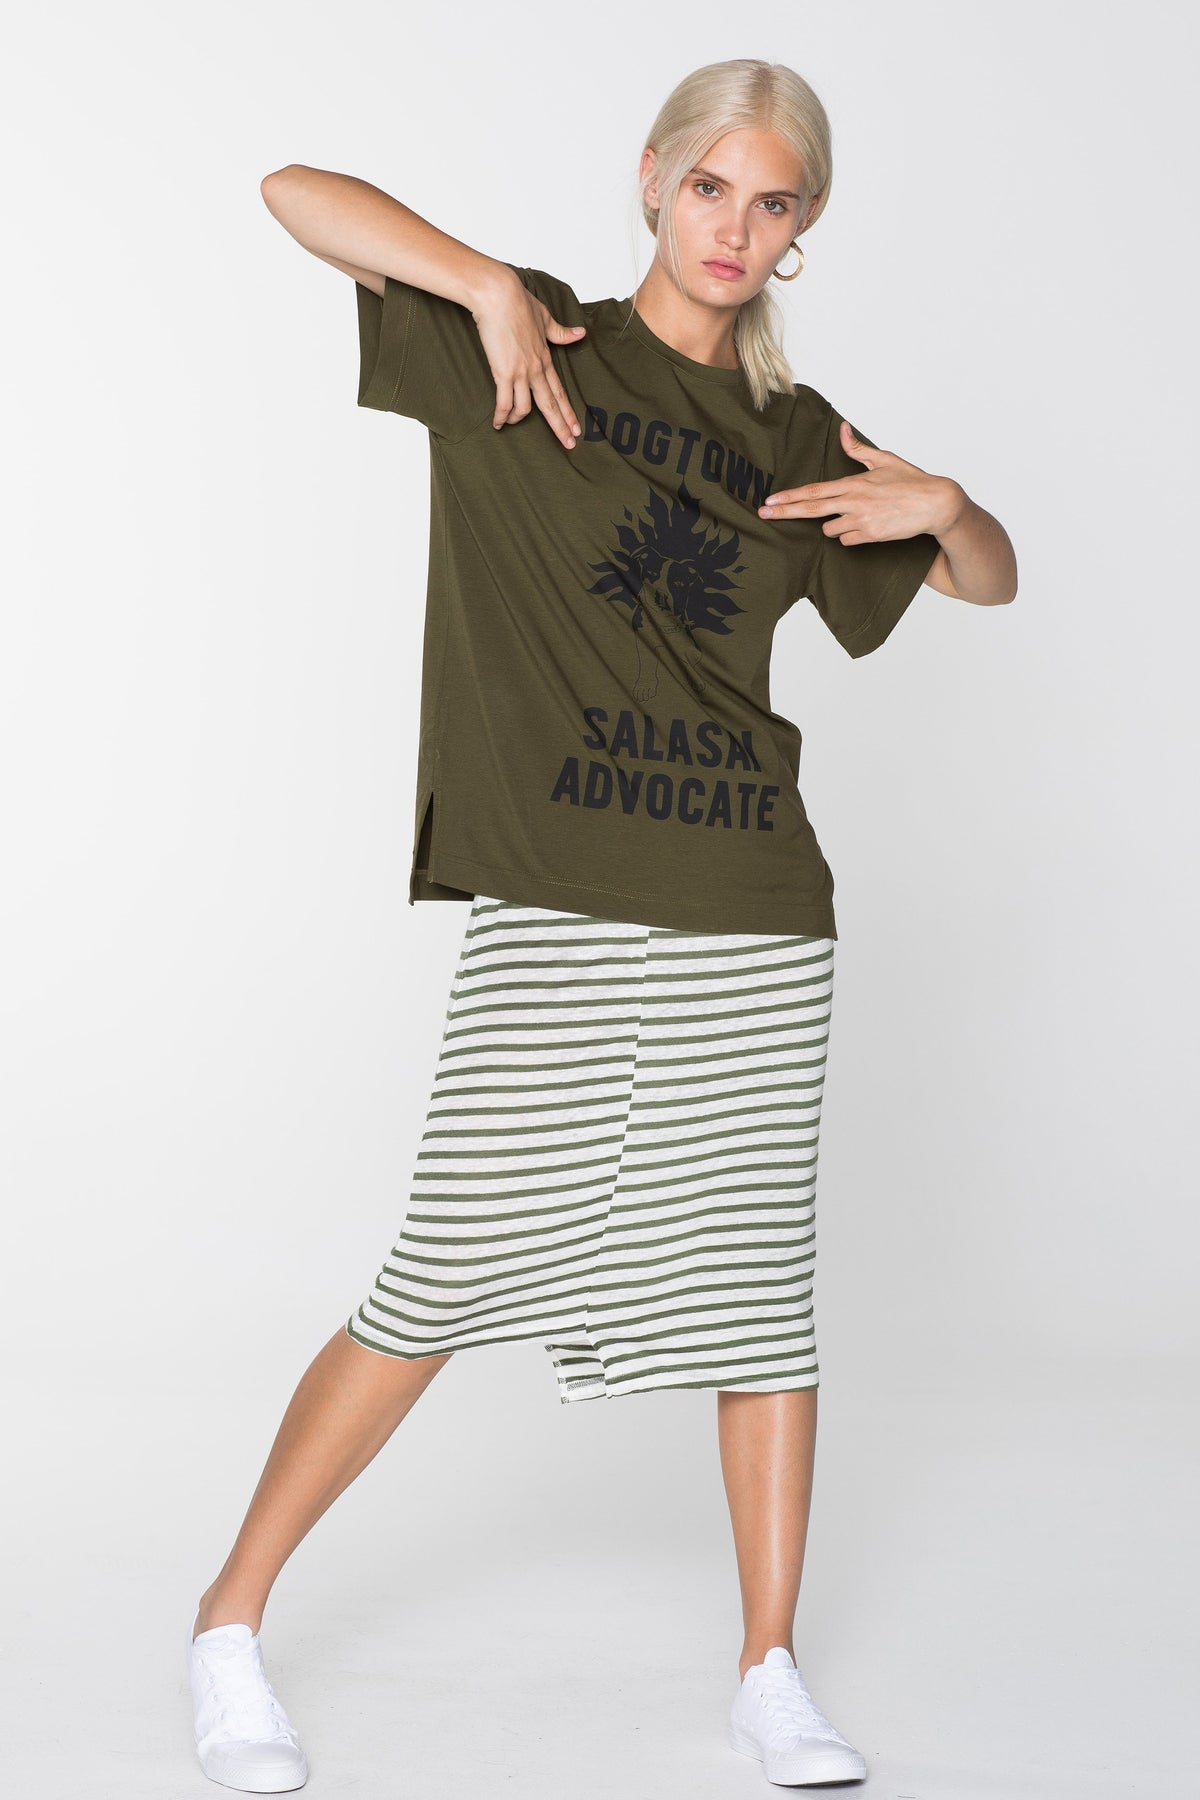 Salasai Dogtown Salasai Advocate Tee Shop Salasai online or at our parnell shop Auckland stockists